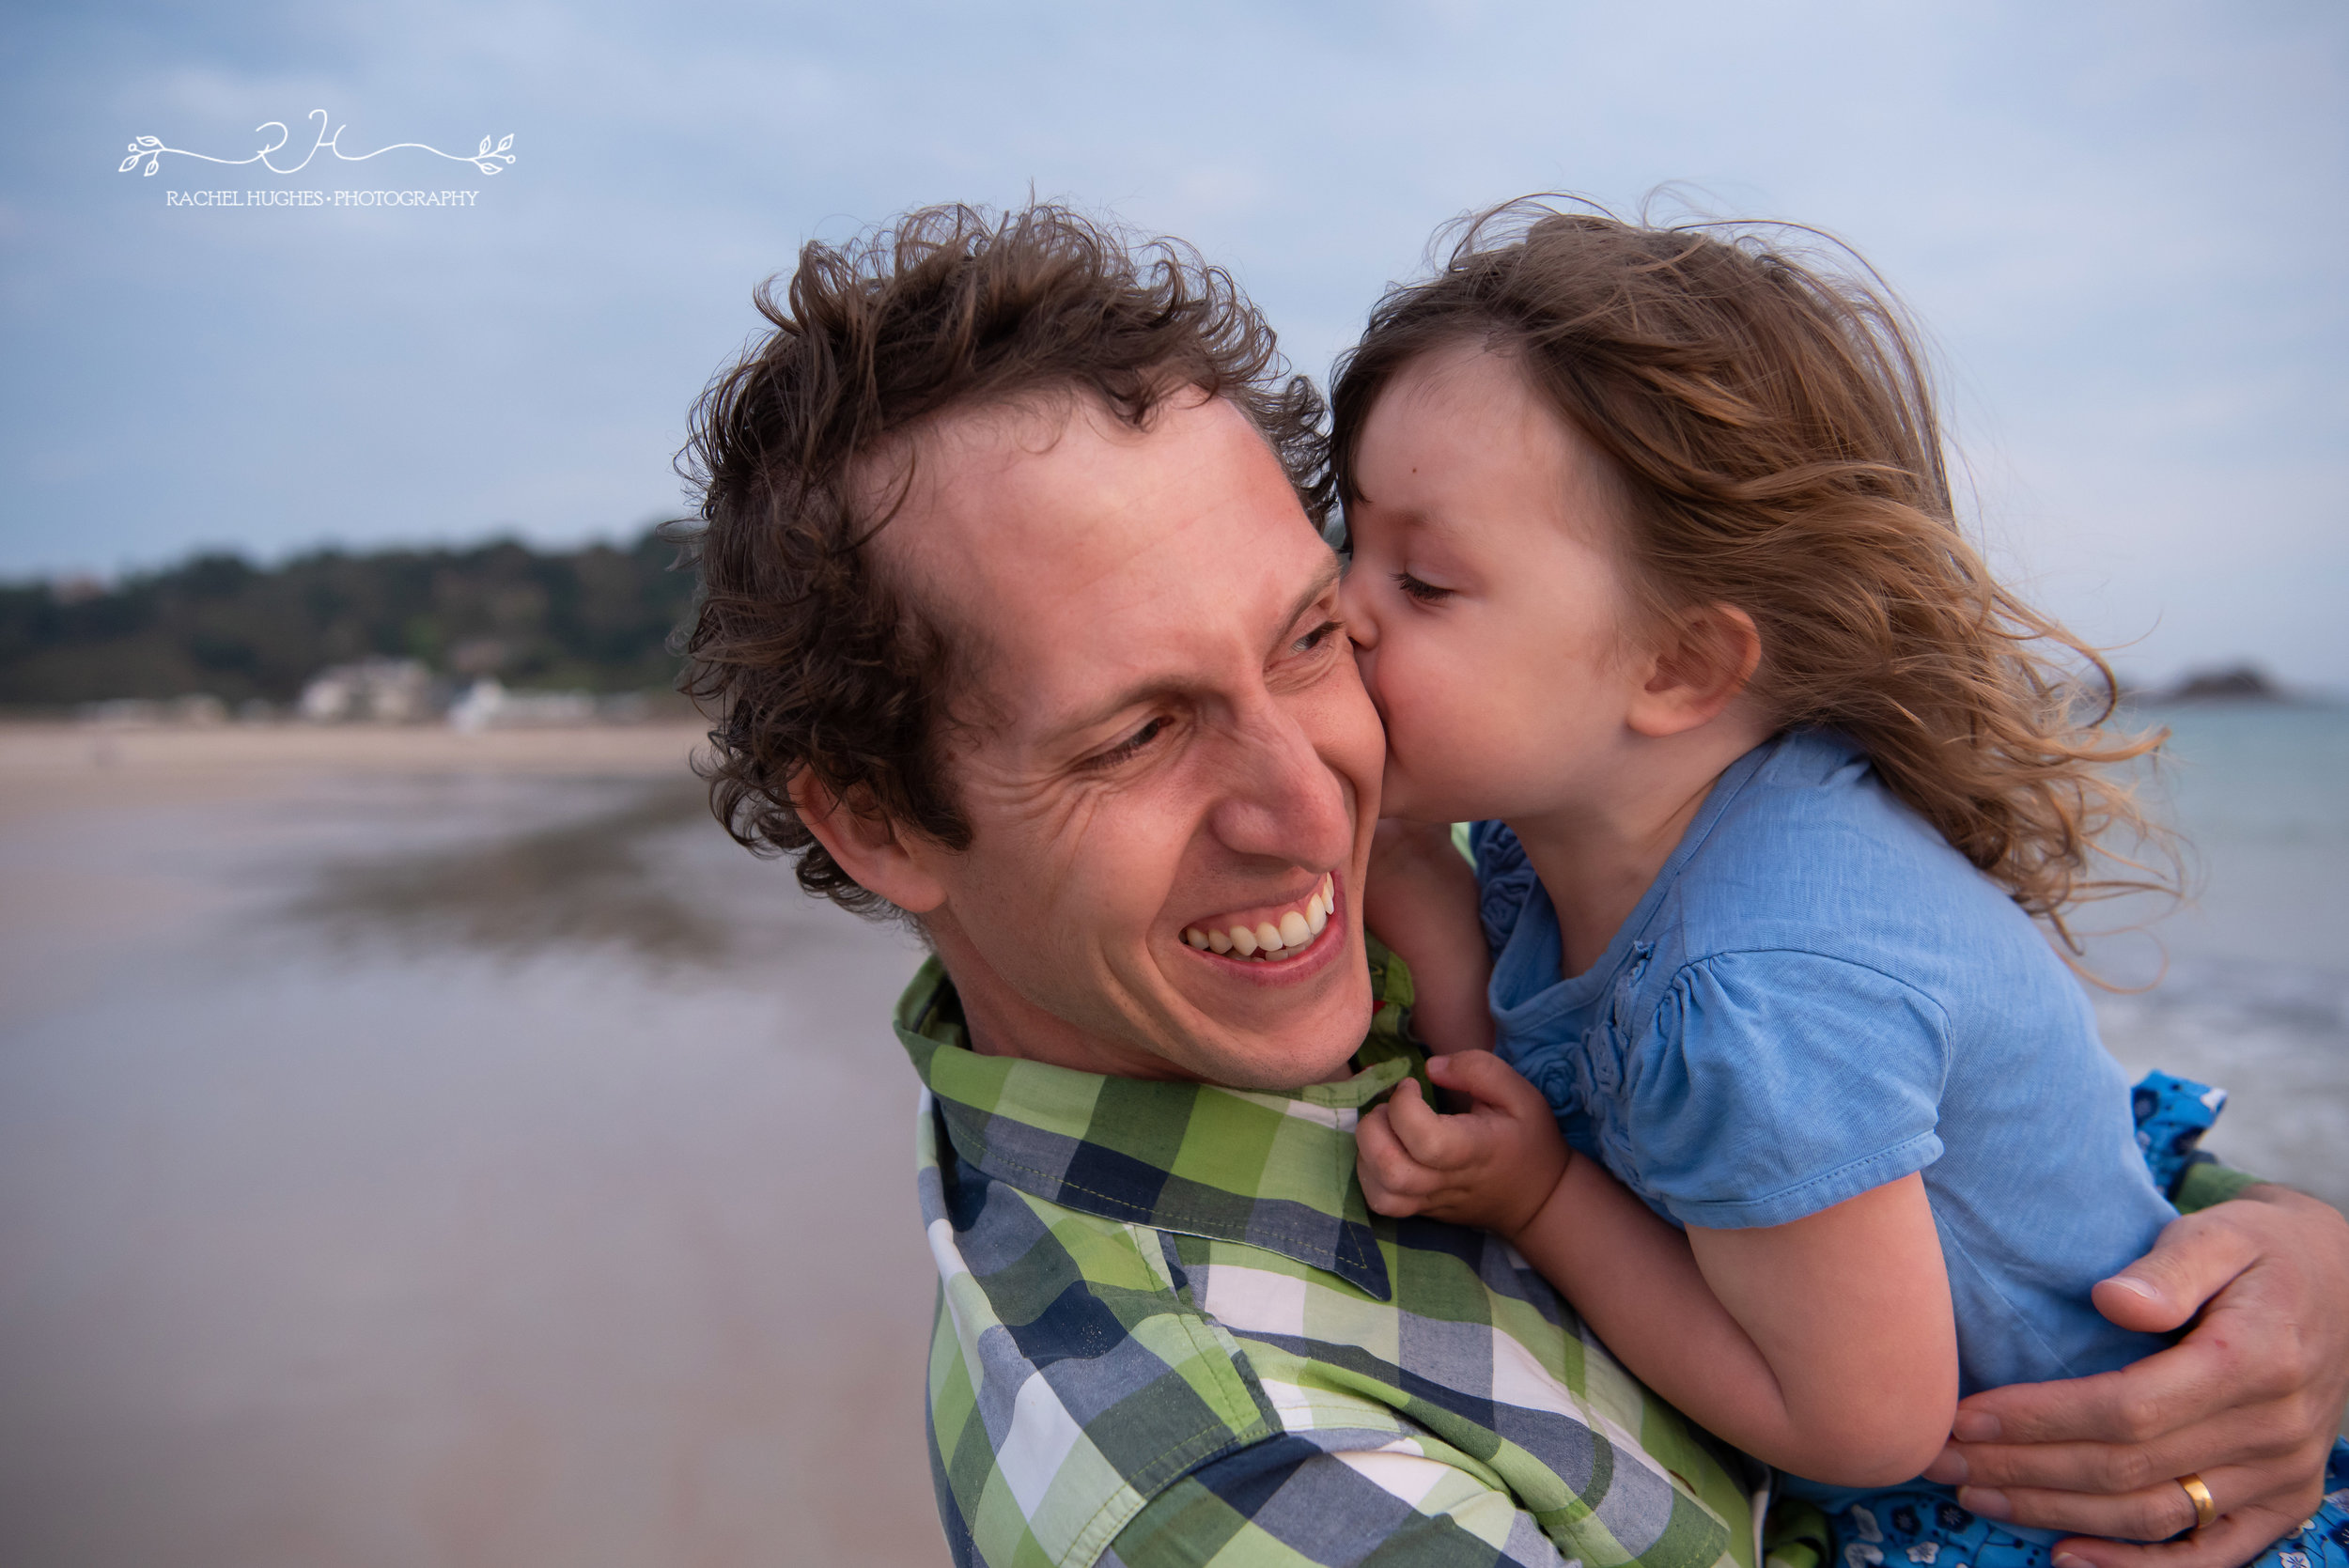 Jersey photographer - girl blowing raspberries on her daddy